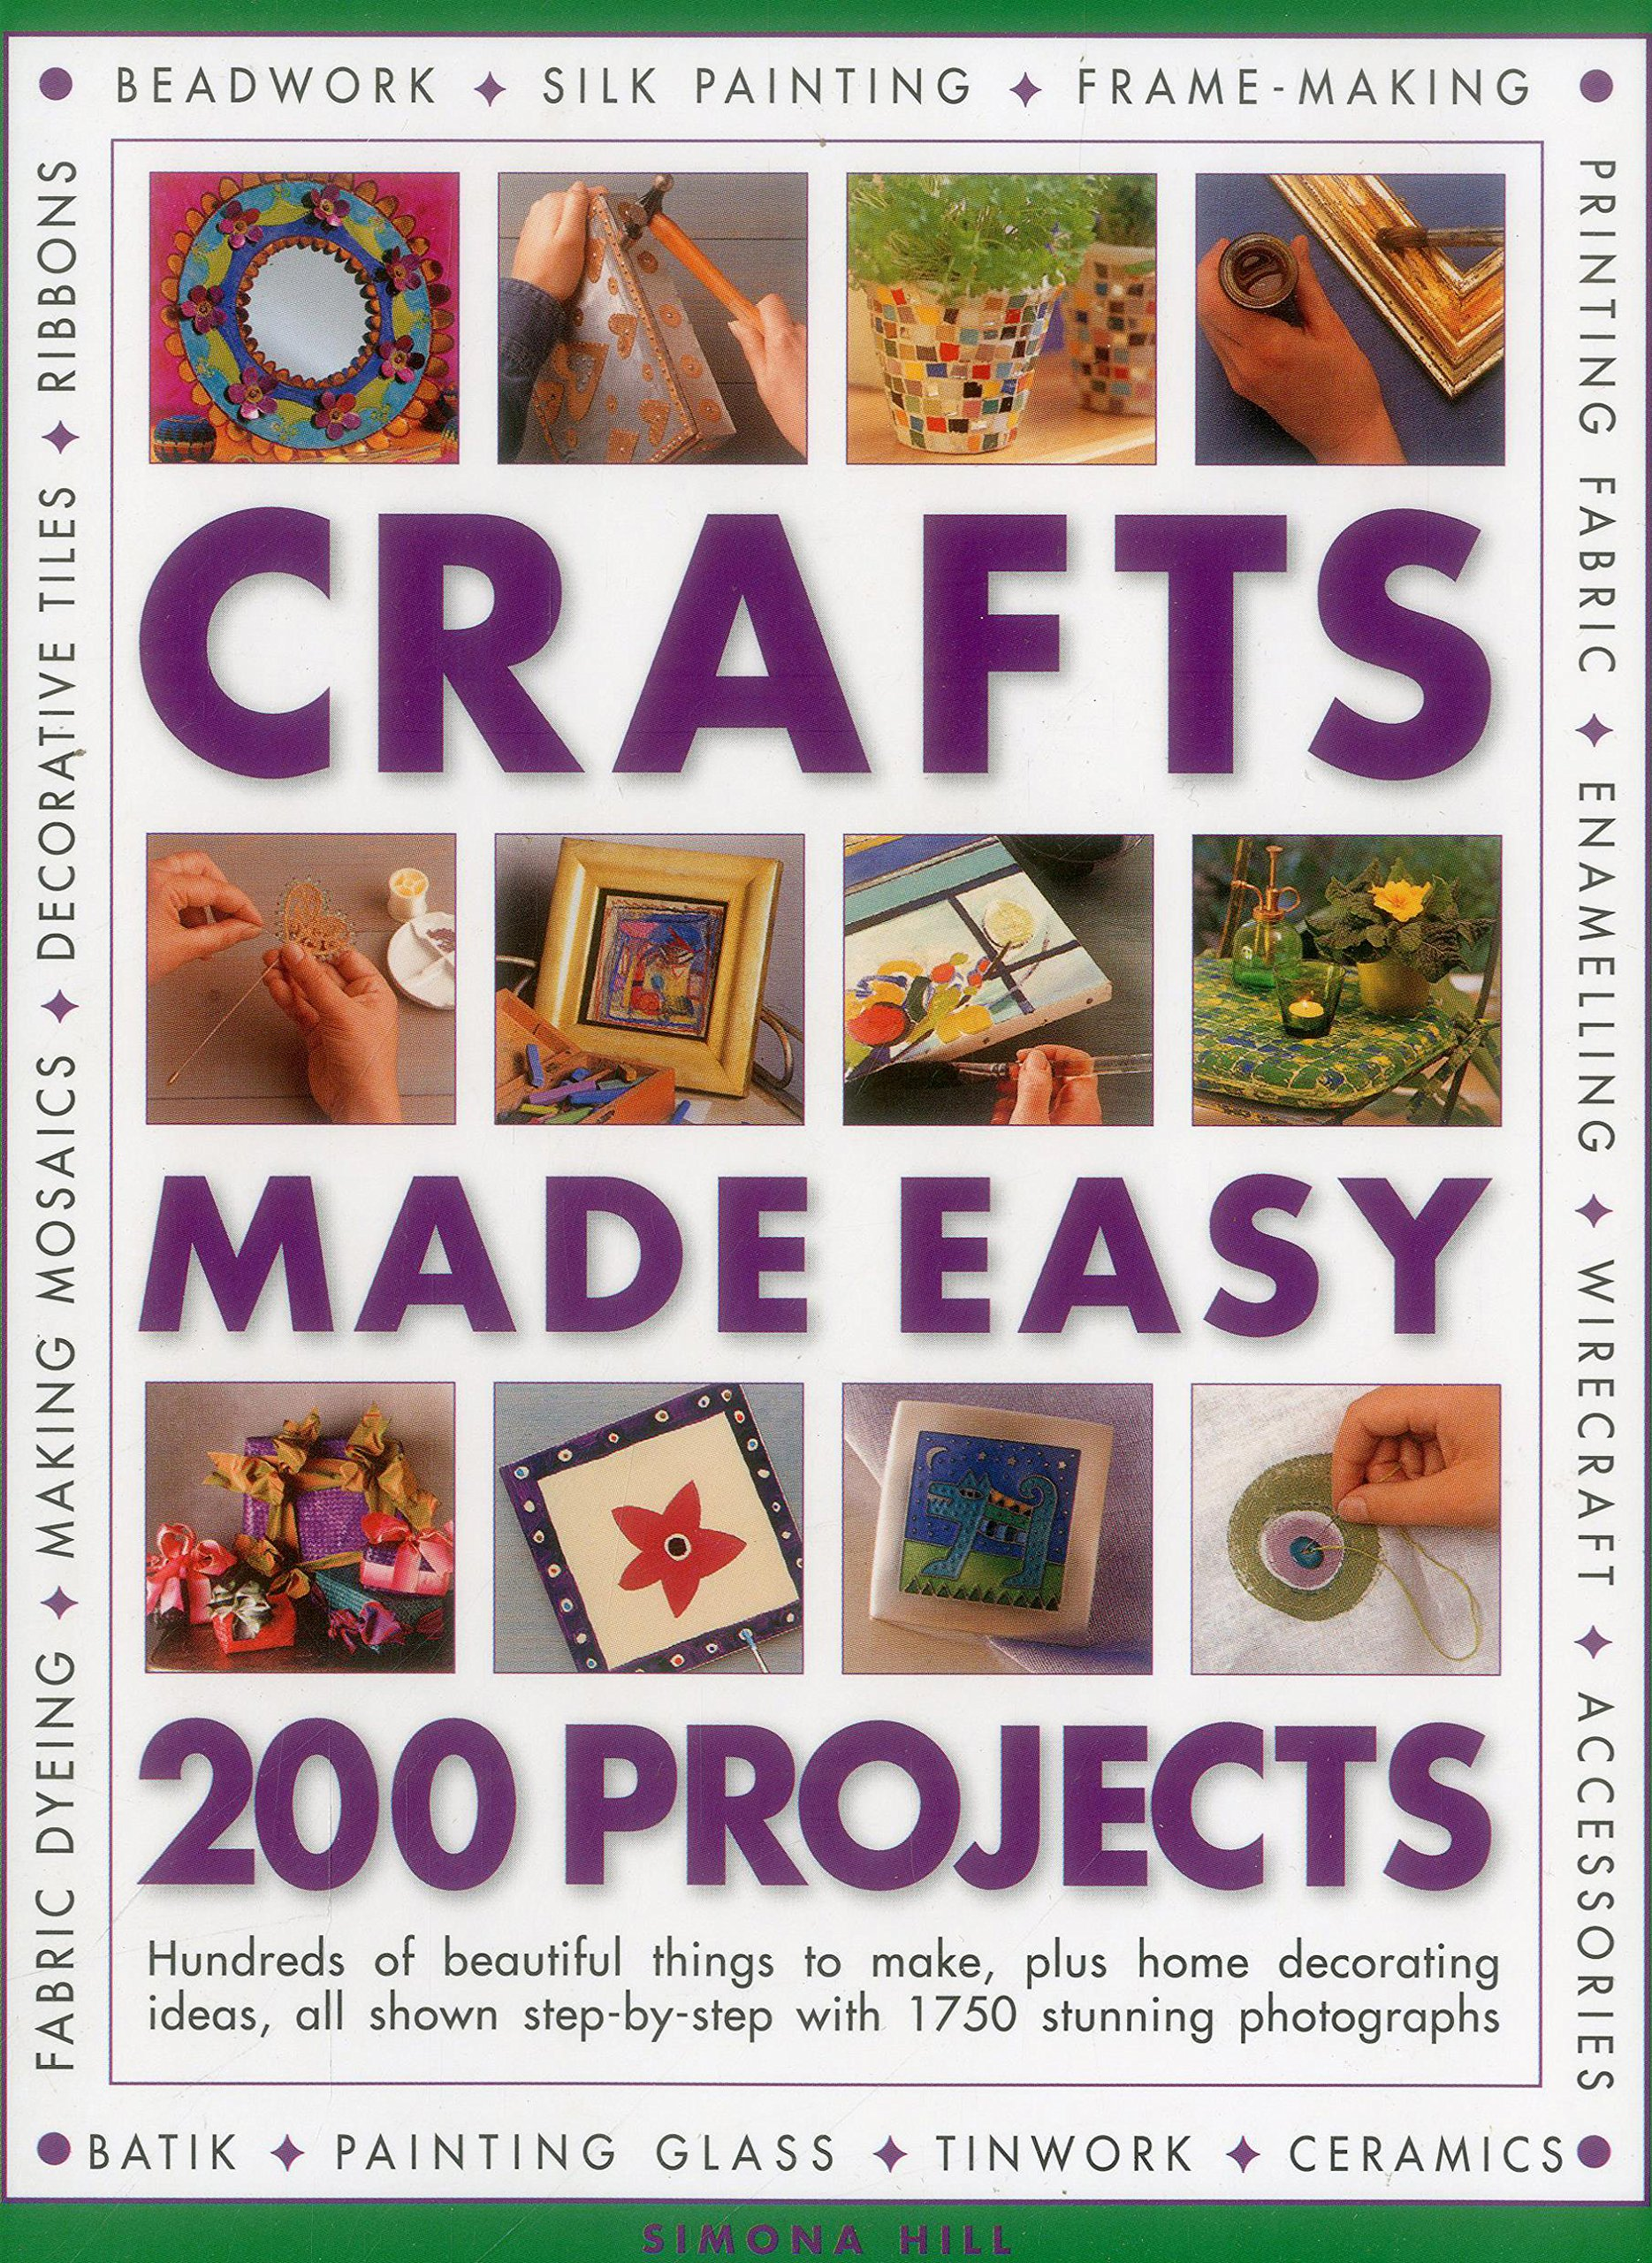 Crafts Made Easy 200 Projects Hundreds Of Beautiful Things To Make Plus Home Decorating Ideas All Shown Step By Step With 1750 Stunning Photographs Crafts Made Easy S Hill Simona 9781780193762 Amazon Com Books